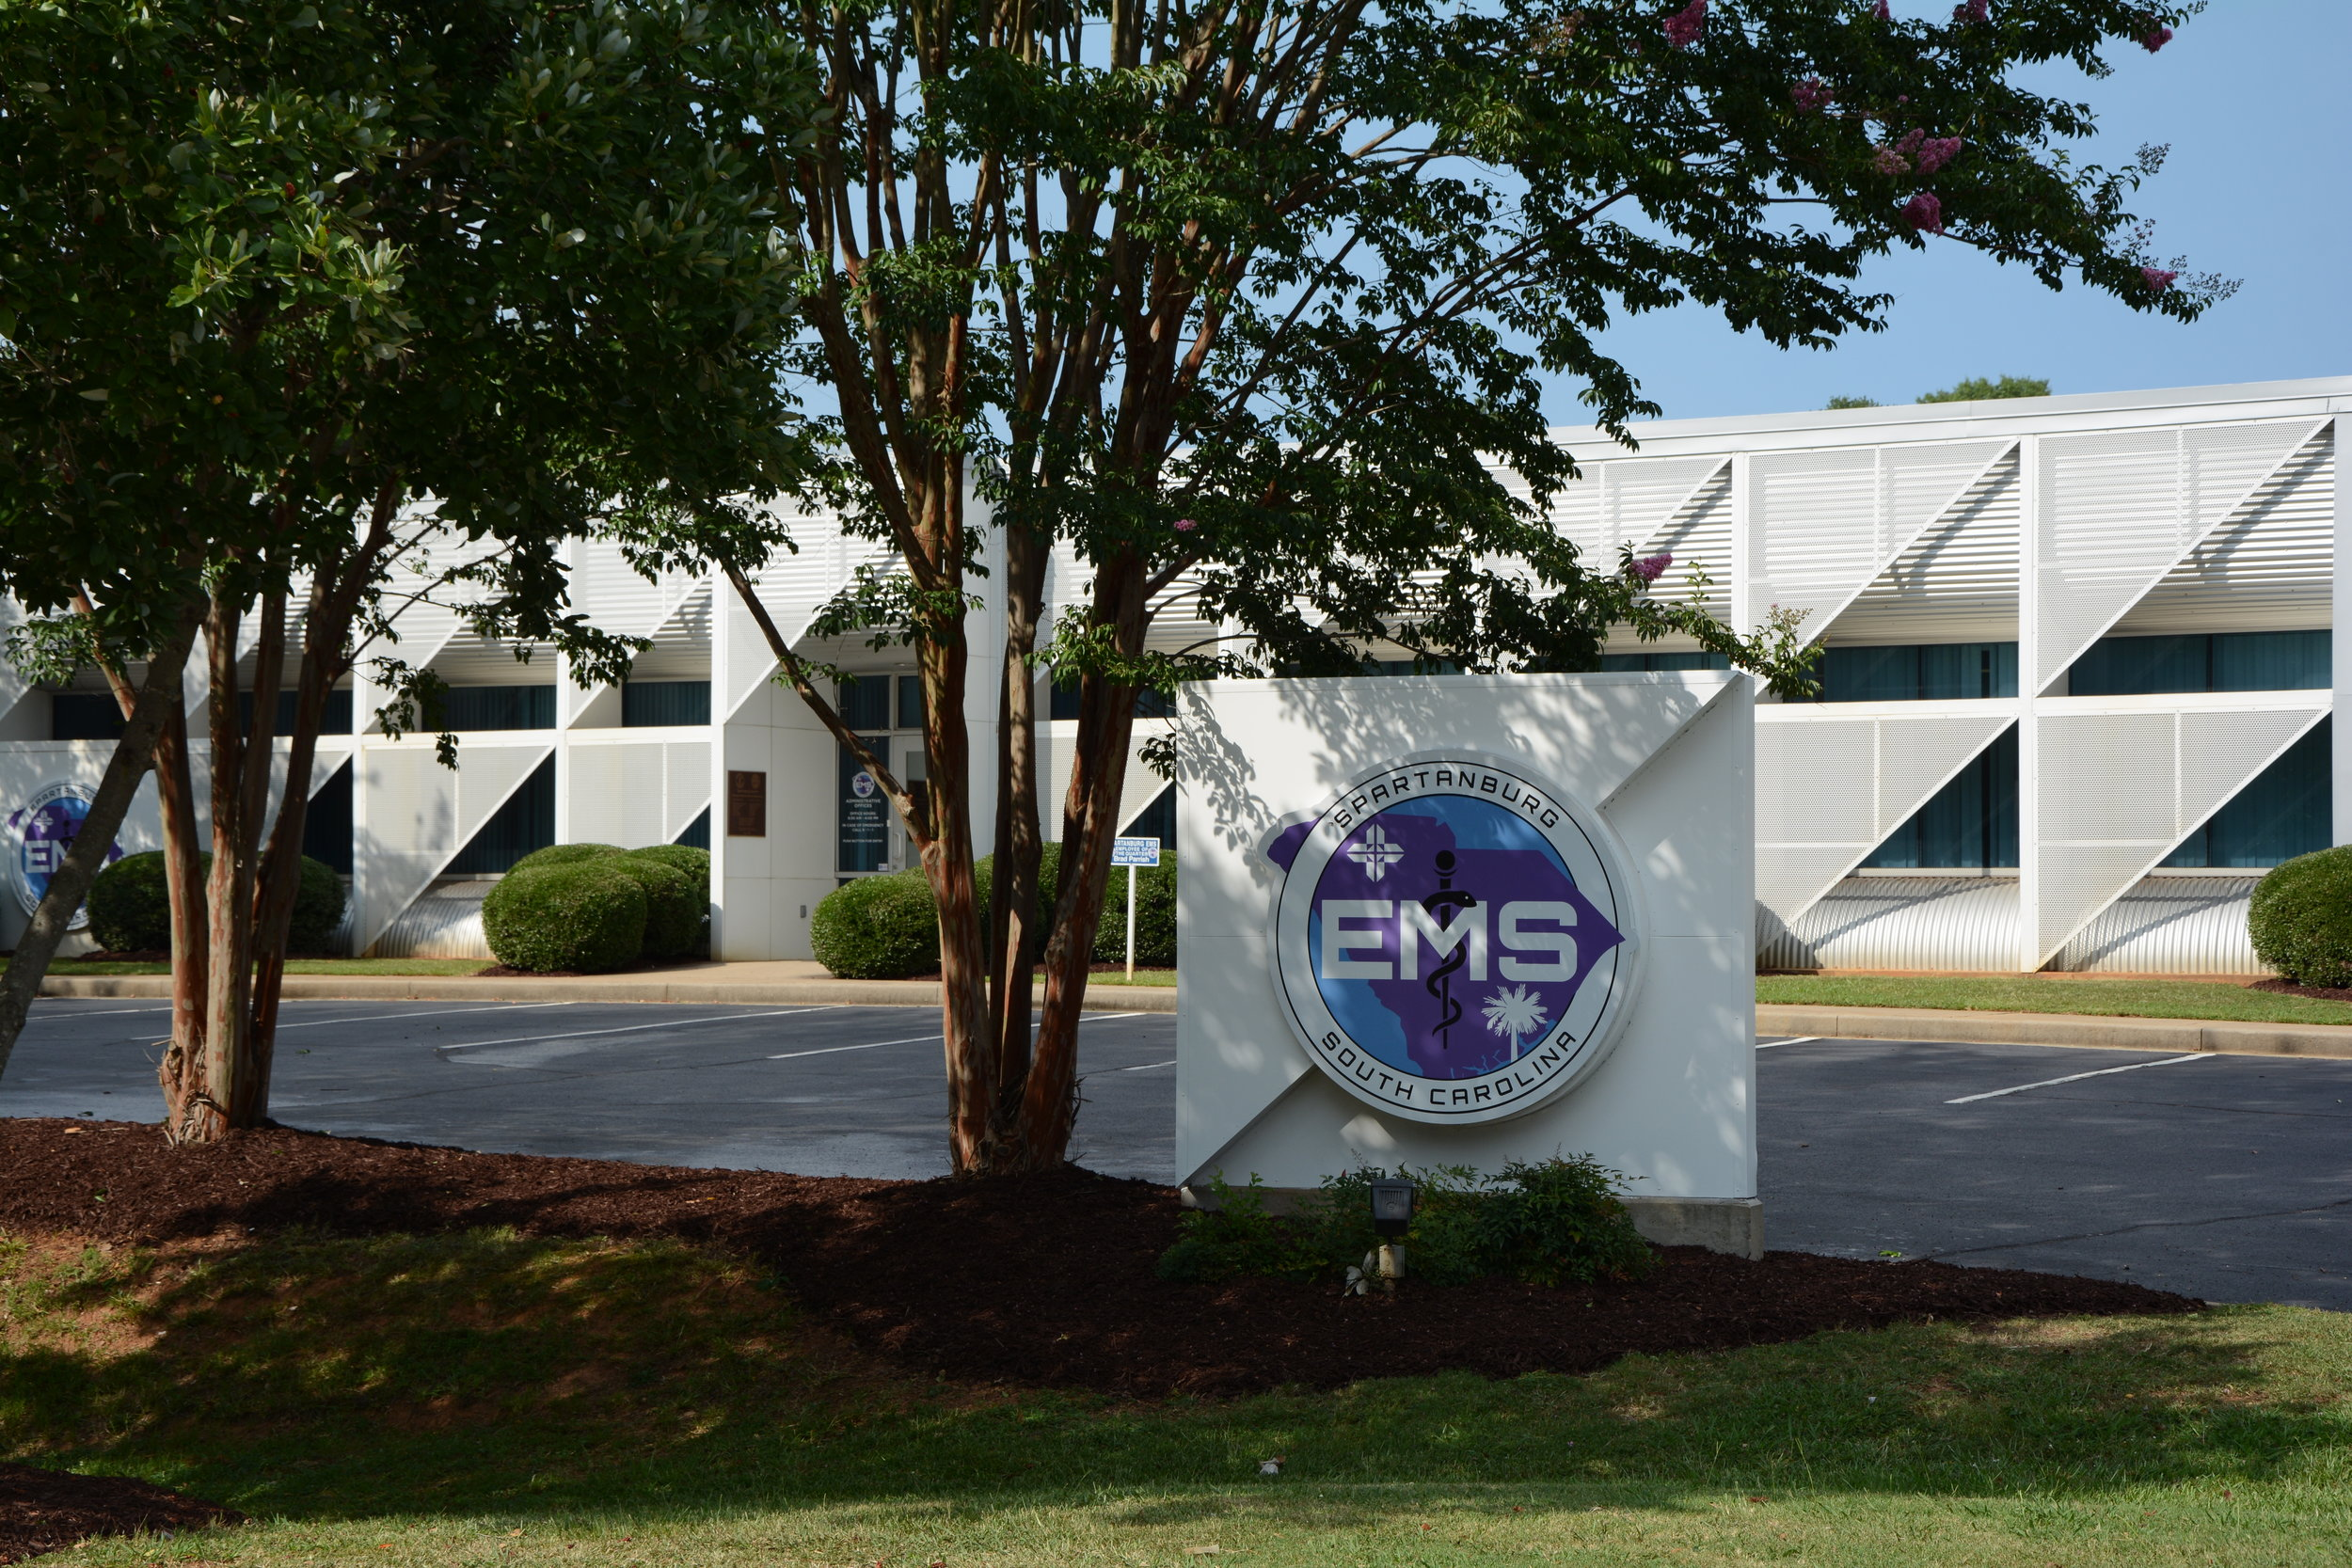 Spartanburg EMS is currently seeking applicants for future positions. -